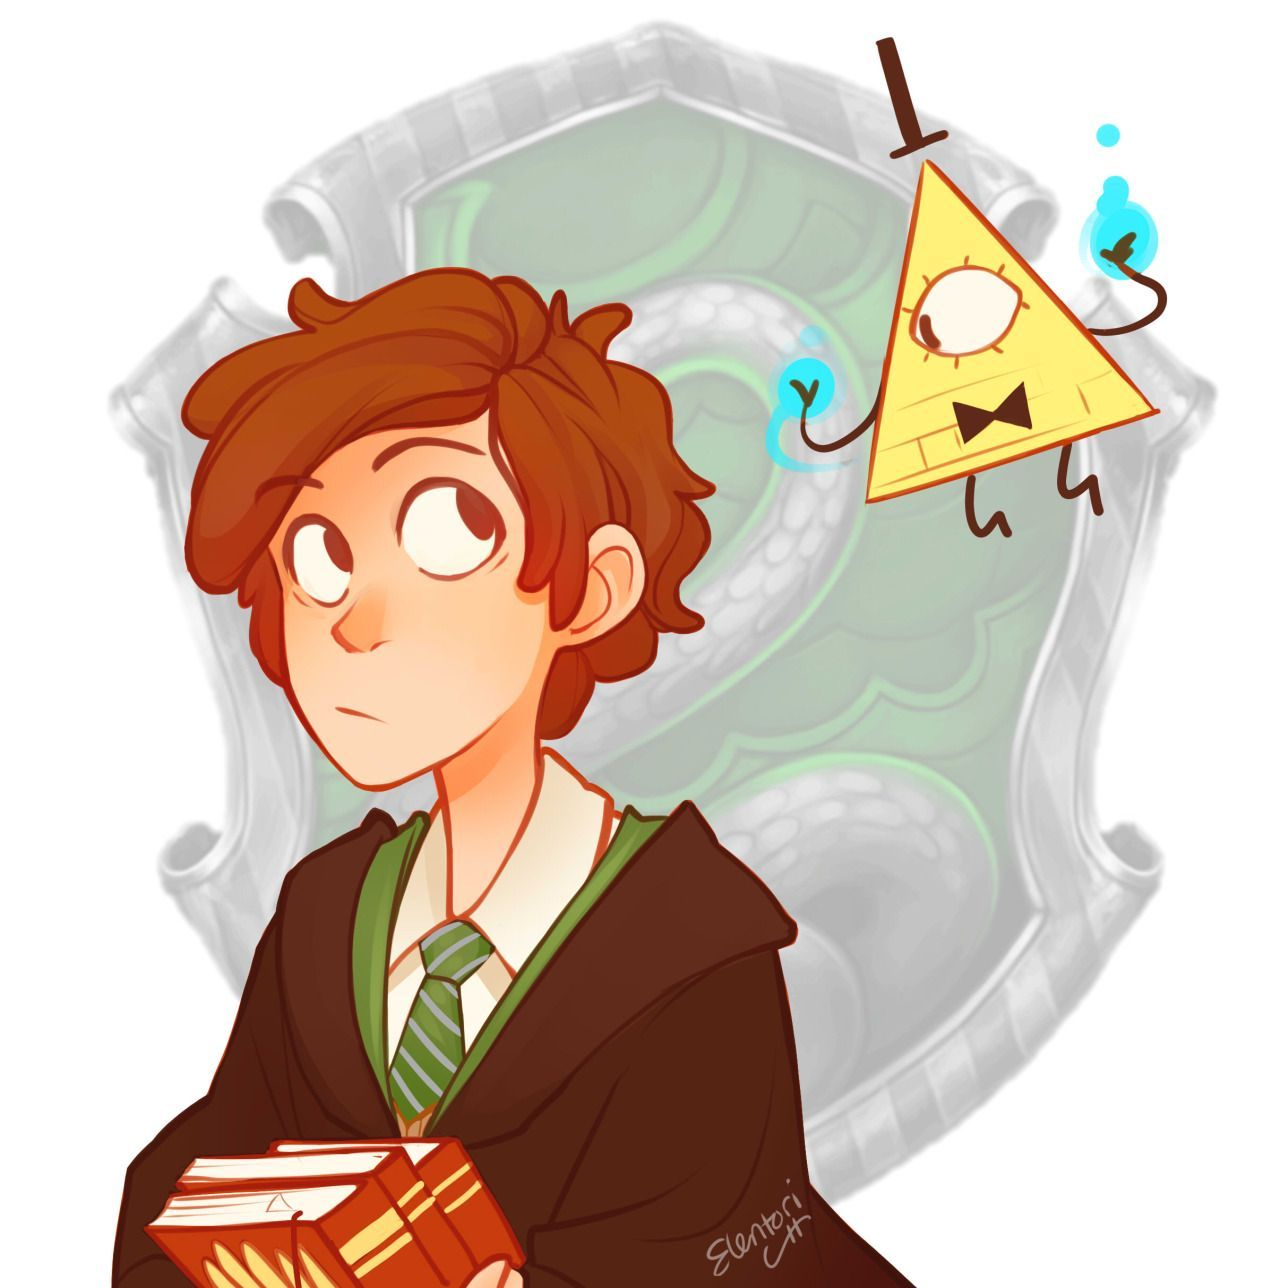 For the rest of this page it's Harry Potter